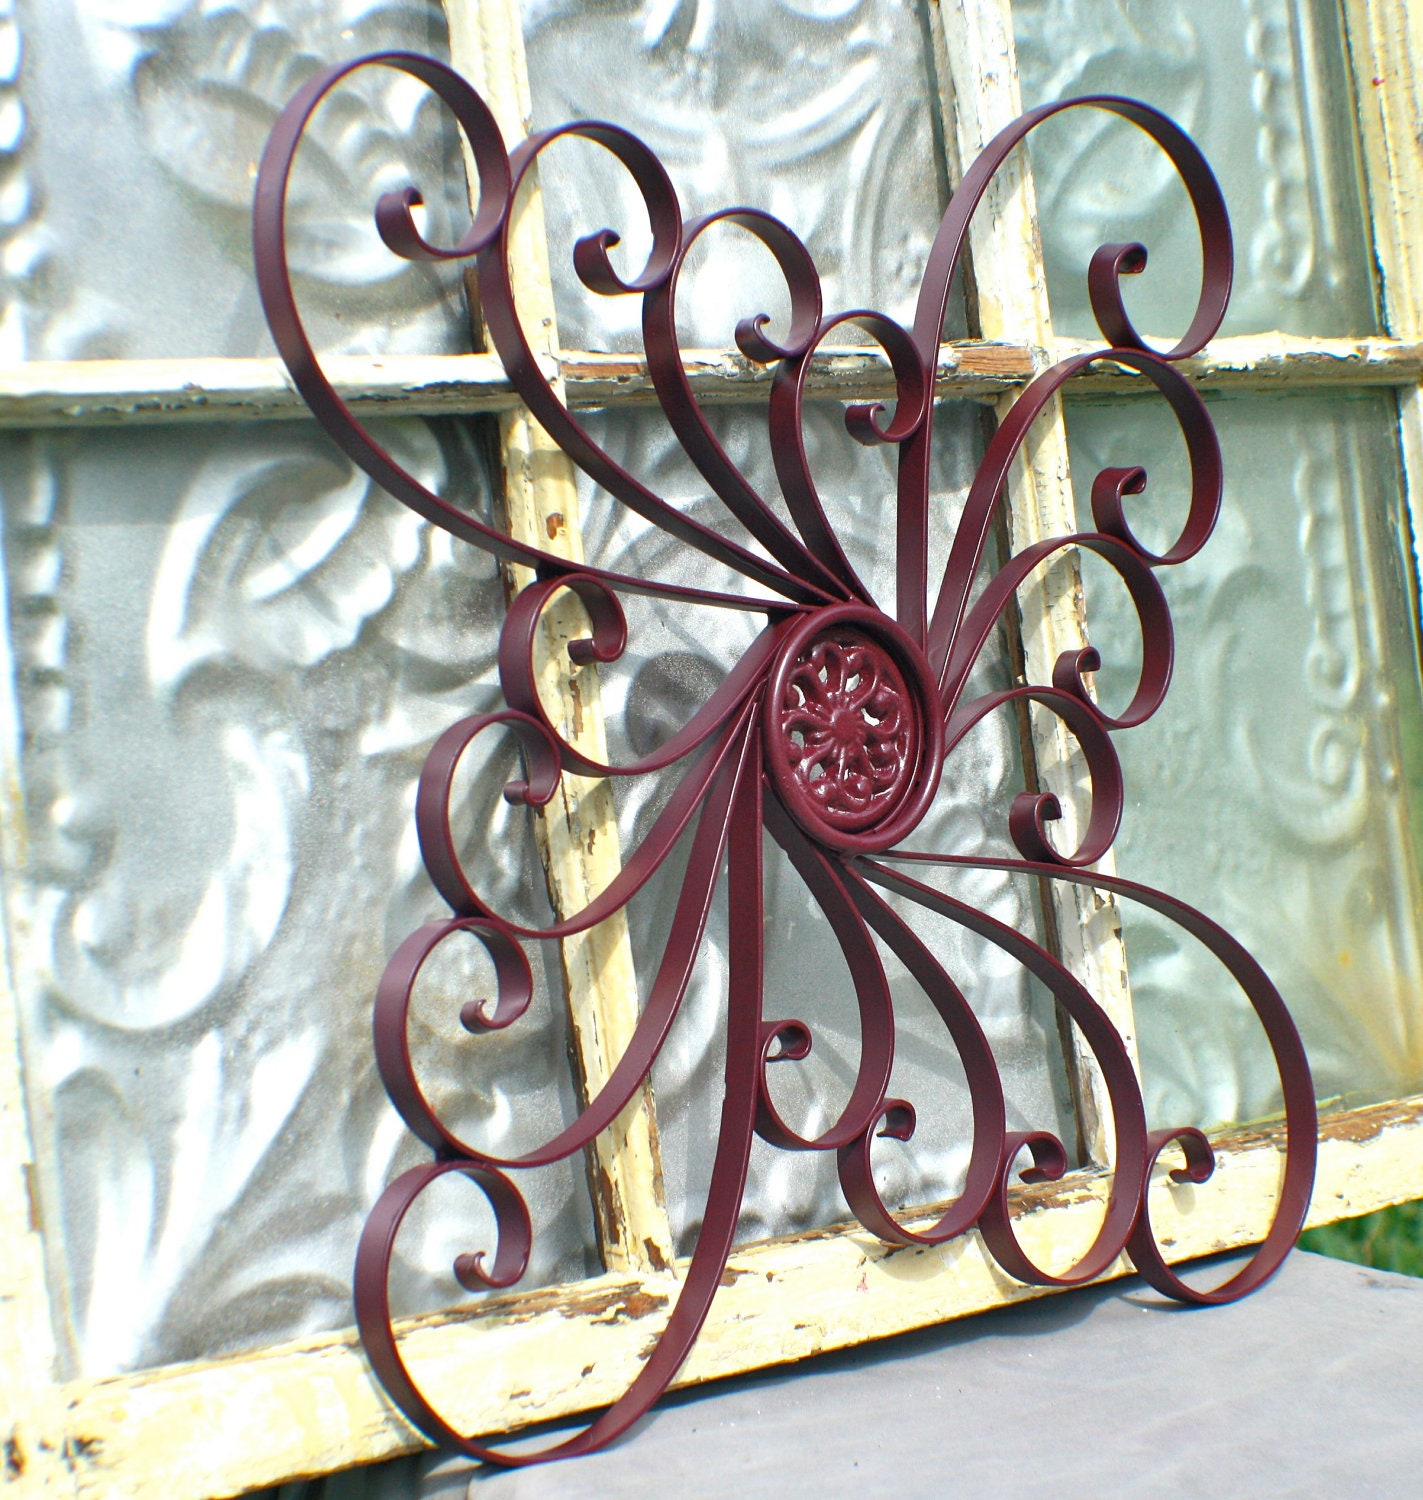 Outdoor decor wall art room ornament -  Popular Items For Outdoor Wall Decor On Etsy